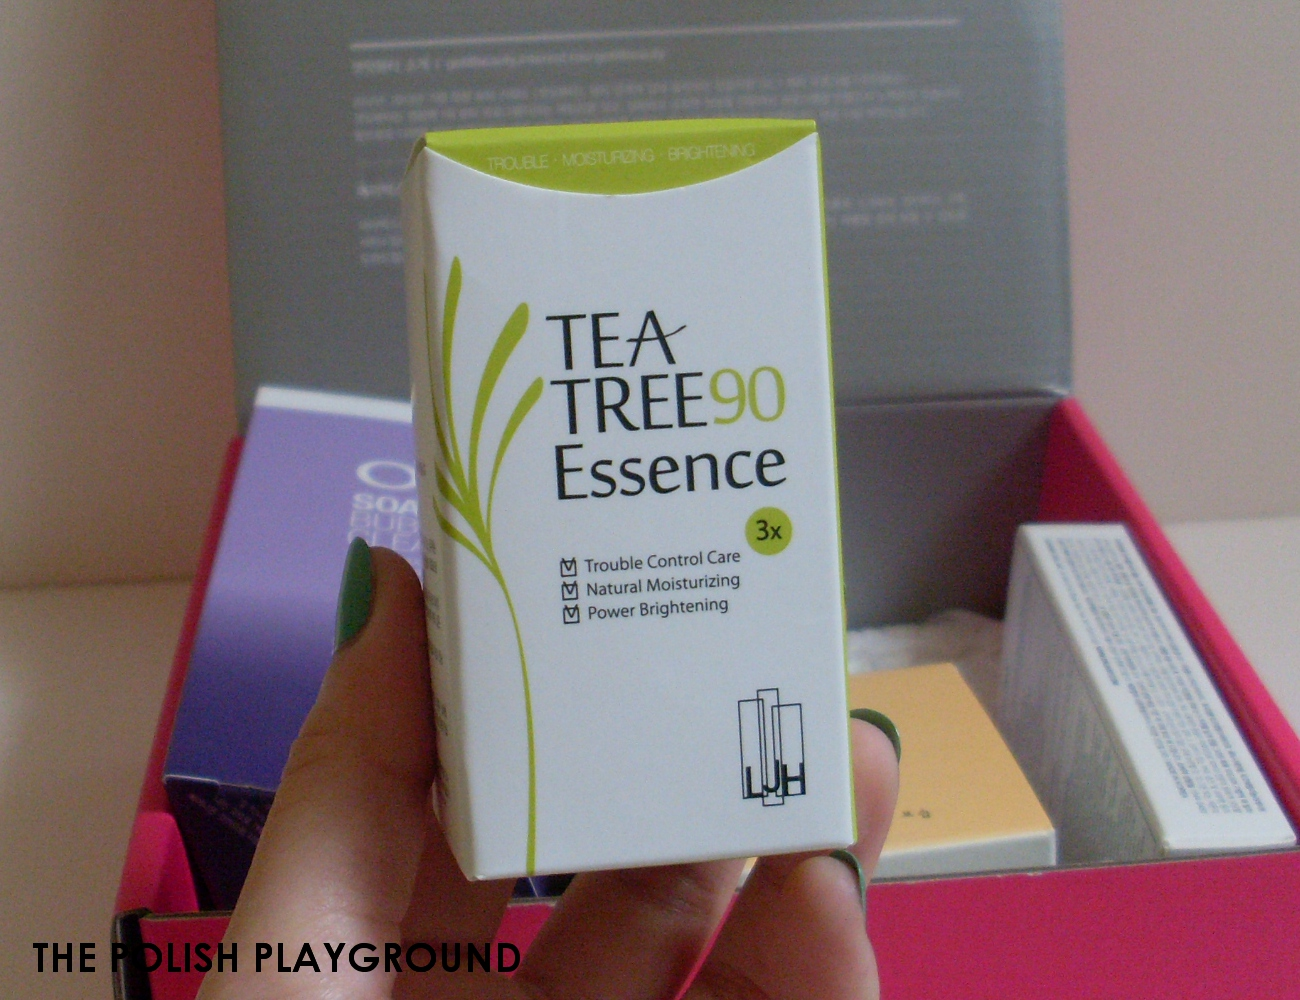 Memebox Luckybox #5 Unboxing - LJH Tea Tree 90 Essence